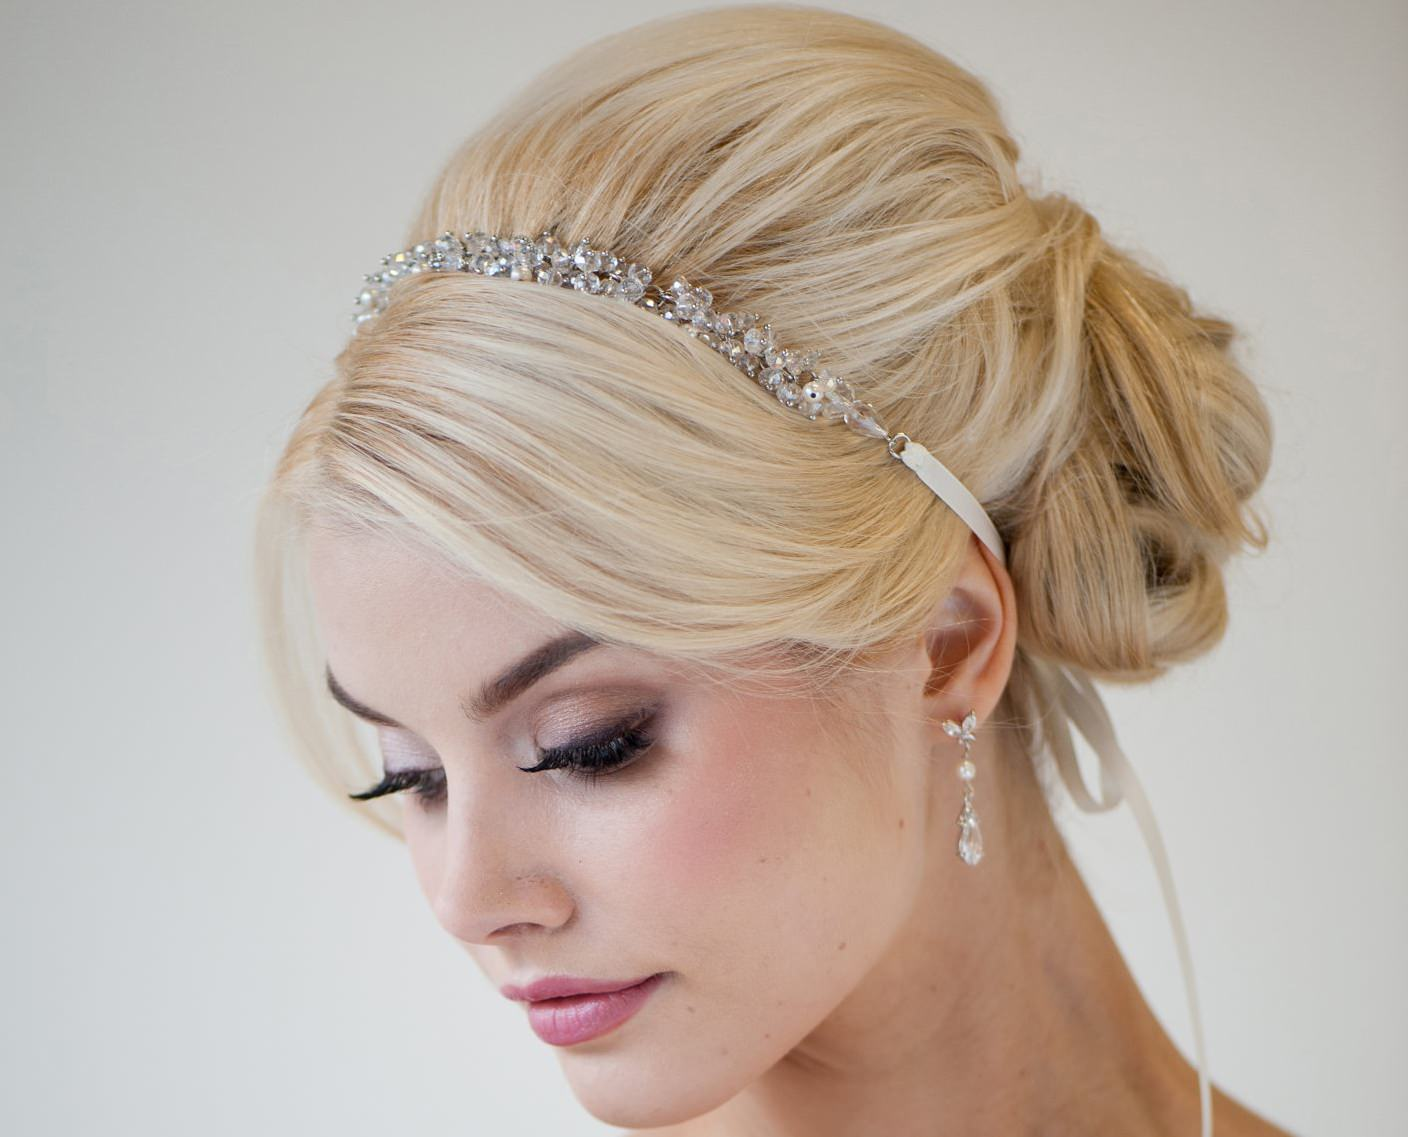 19+ Bridesmaid Hairstyle Designs, Ideas